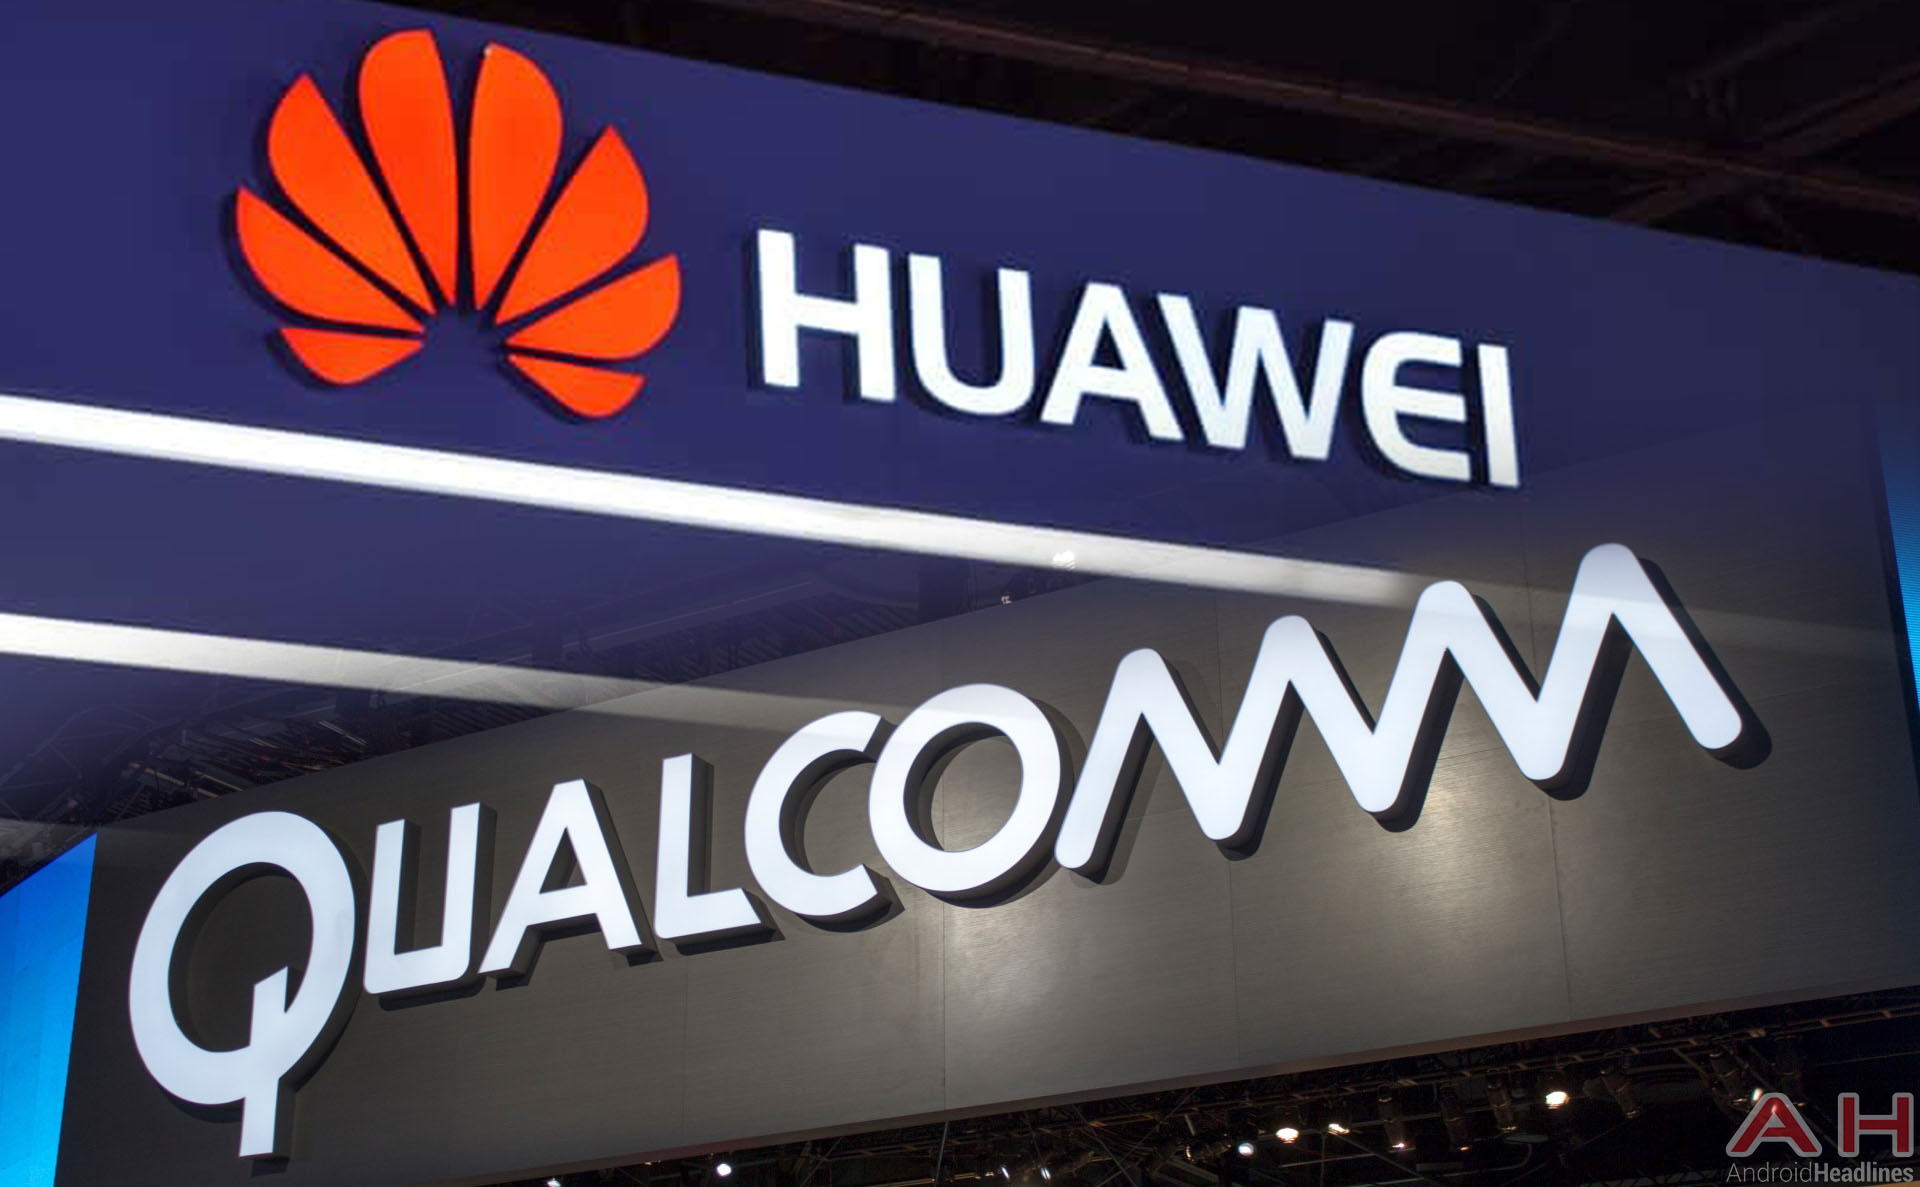 qualcomm loveste in huawei si intrerupe colaborarea